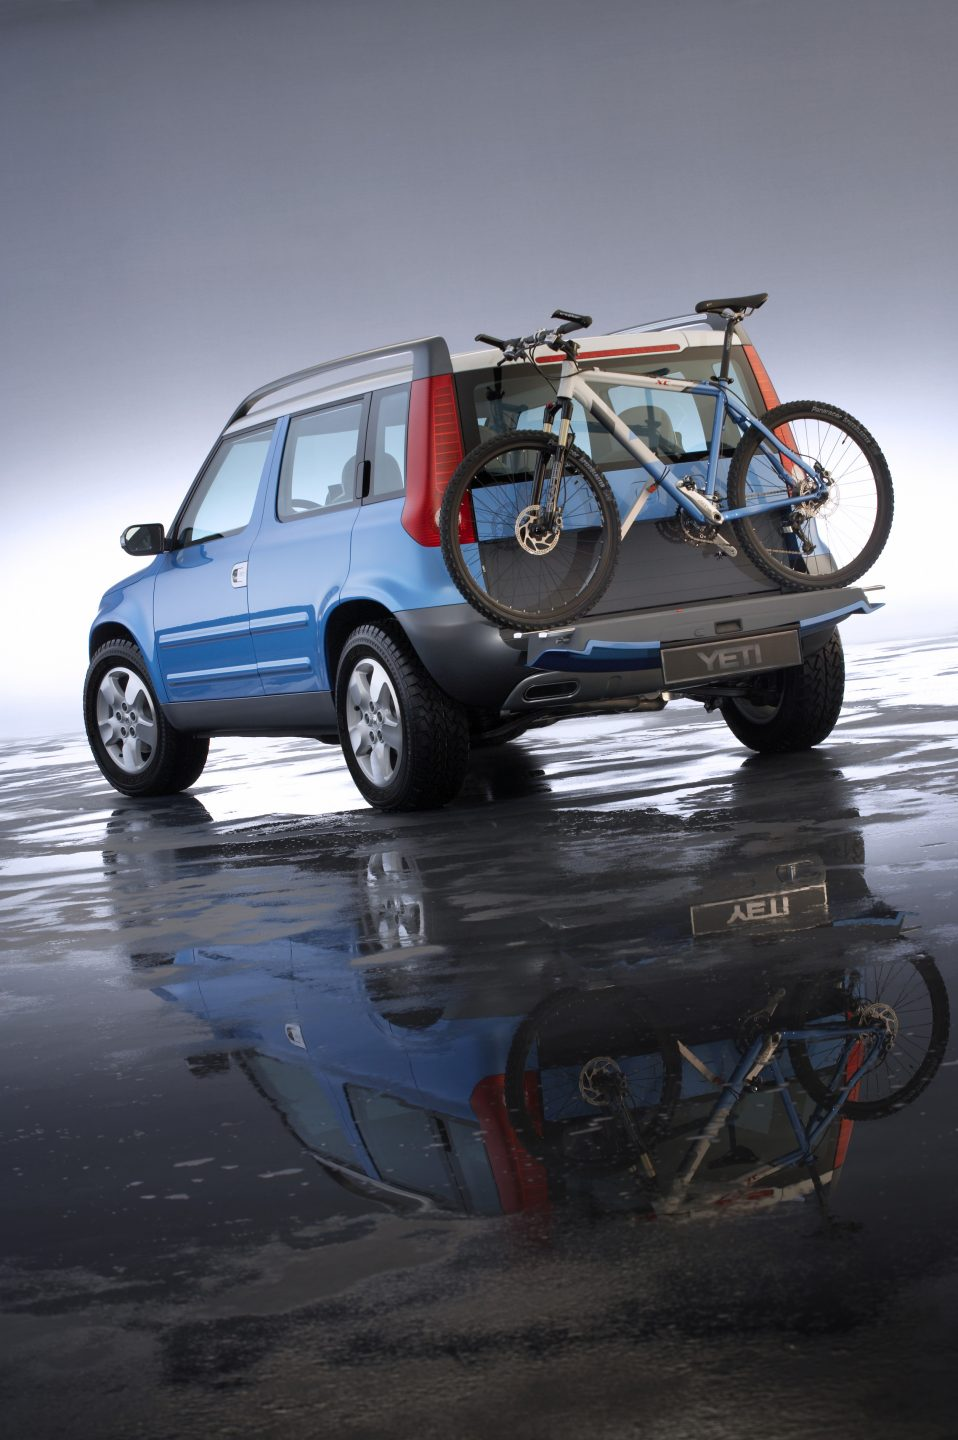 skoda-yeti-bike-design-technology